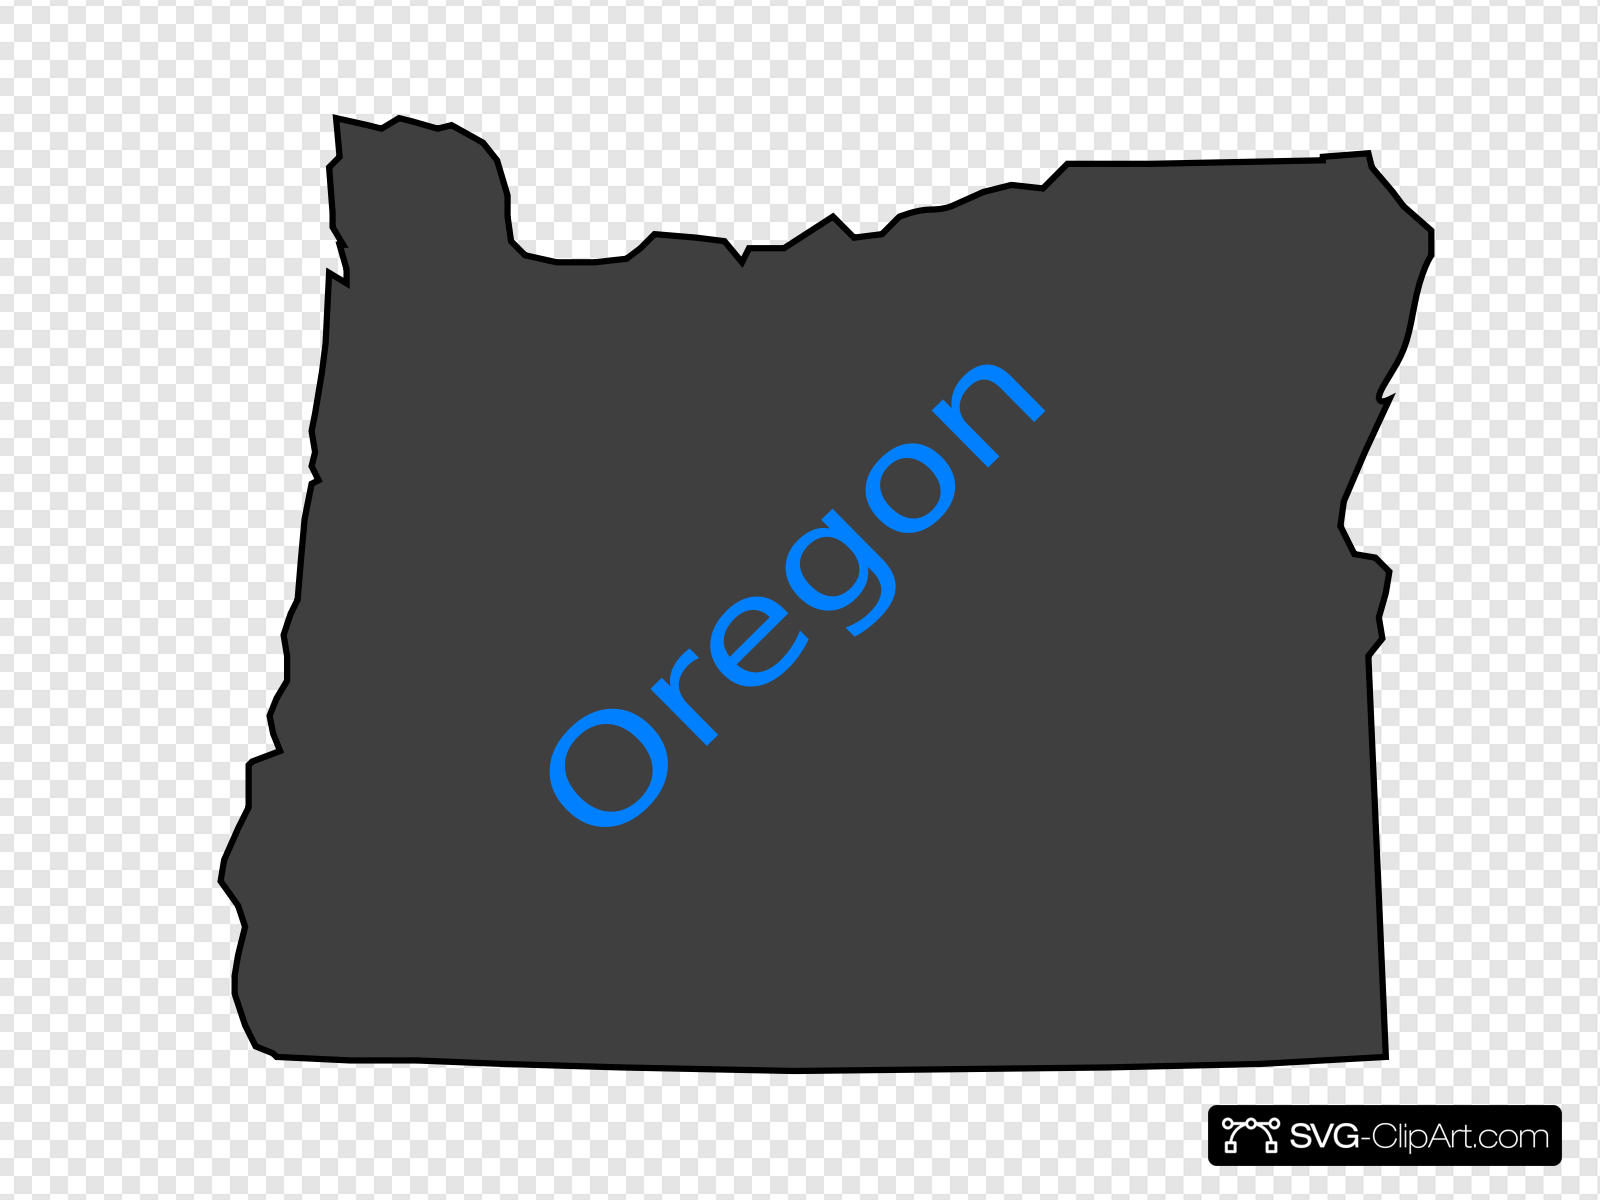 Oregon Clip art, Icon and SVG.